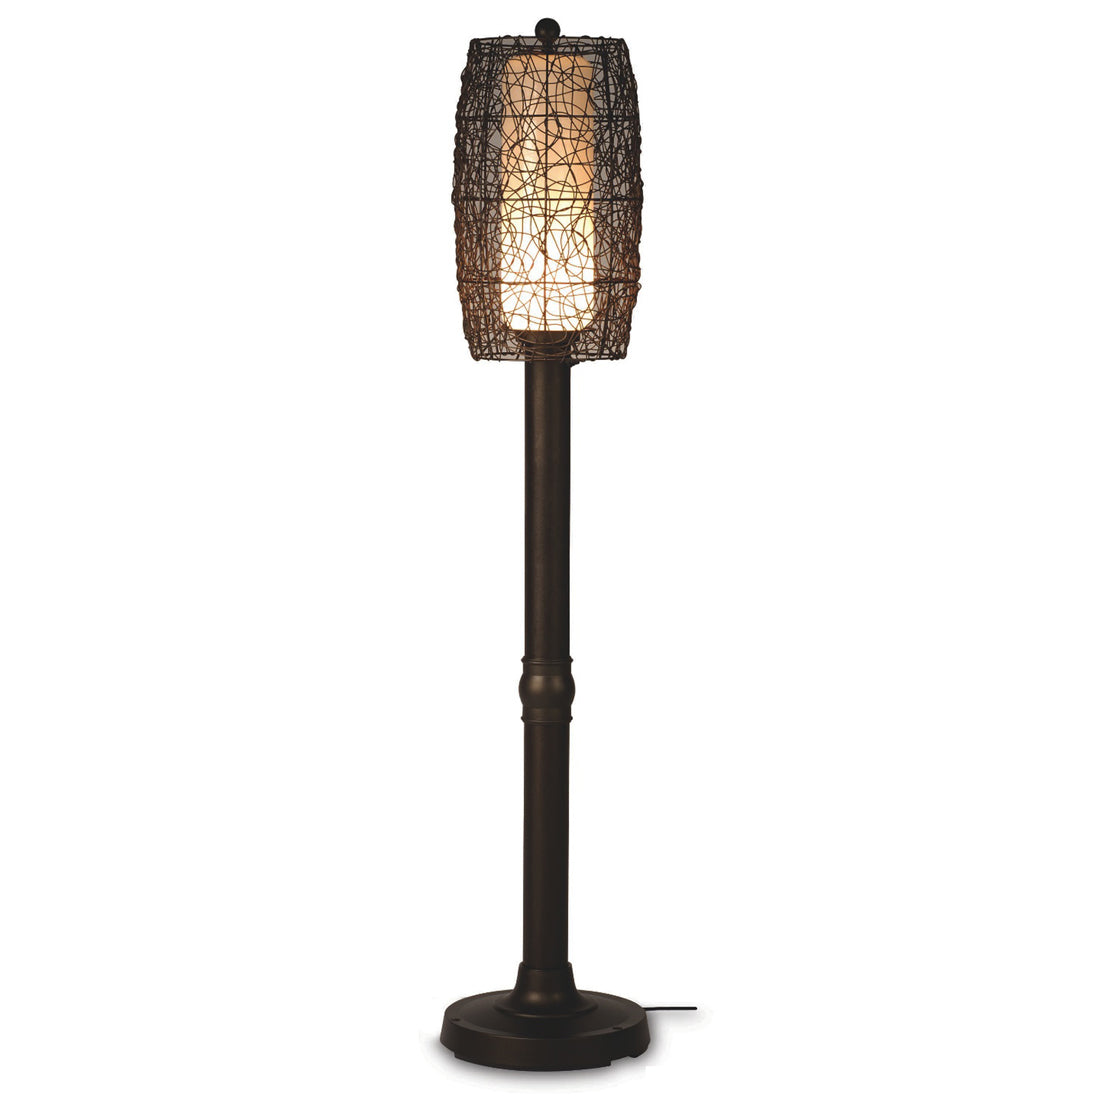 "Bristol 70"" Floor Lamp 68267 with 3"" bronze tube body and random weave walnut wicker barrel shade"